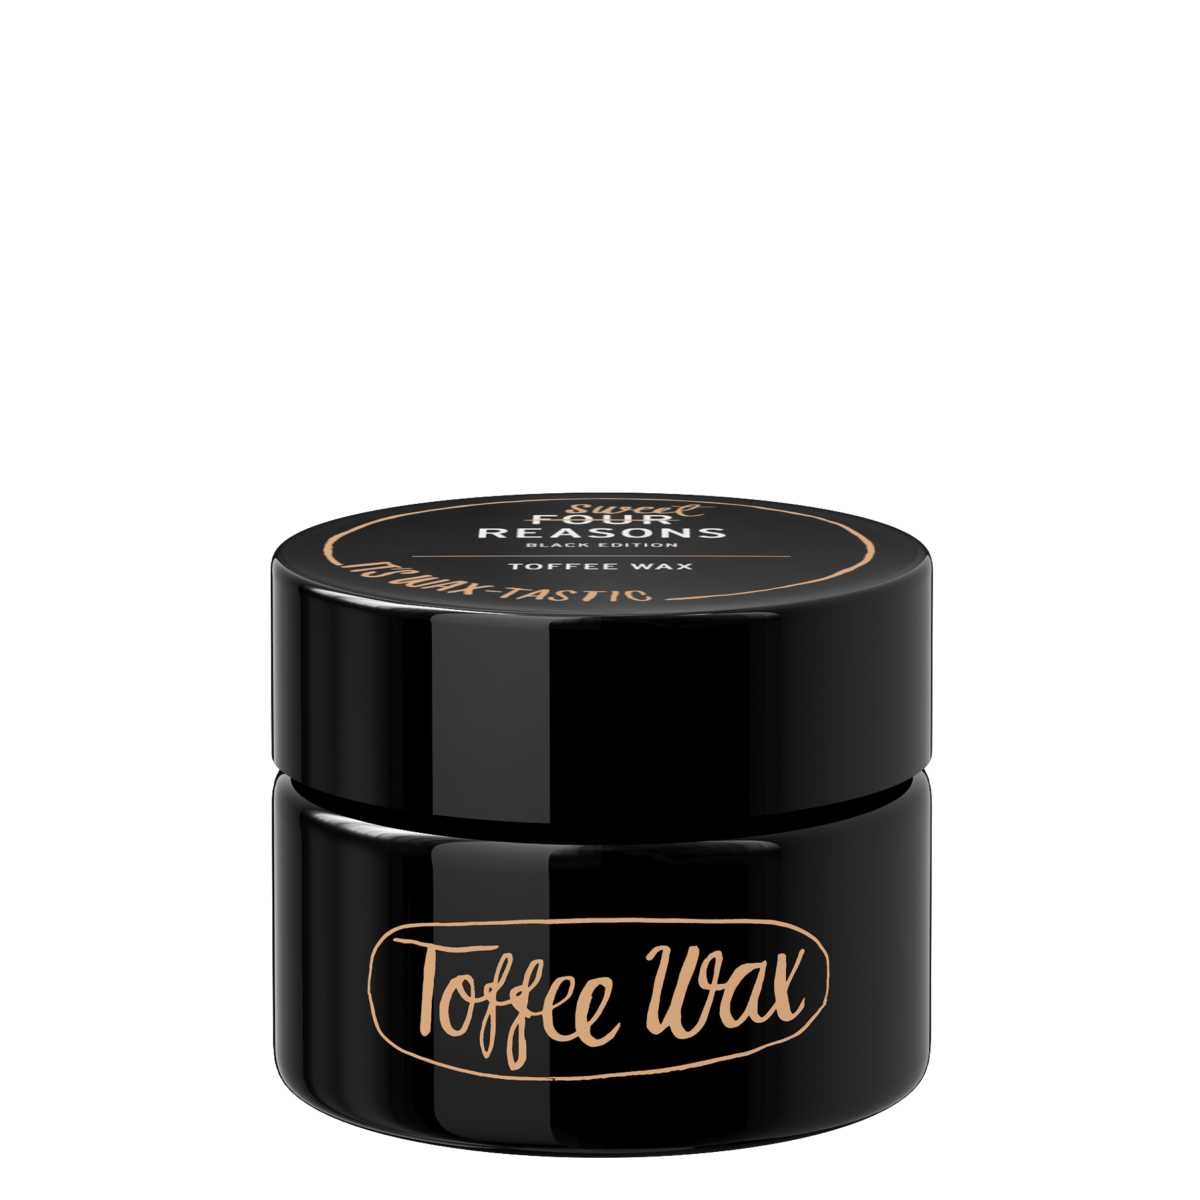 Four-Reasons-Black-Edition-Toffee-Wax